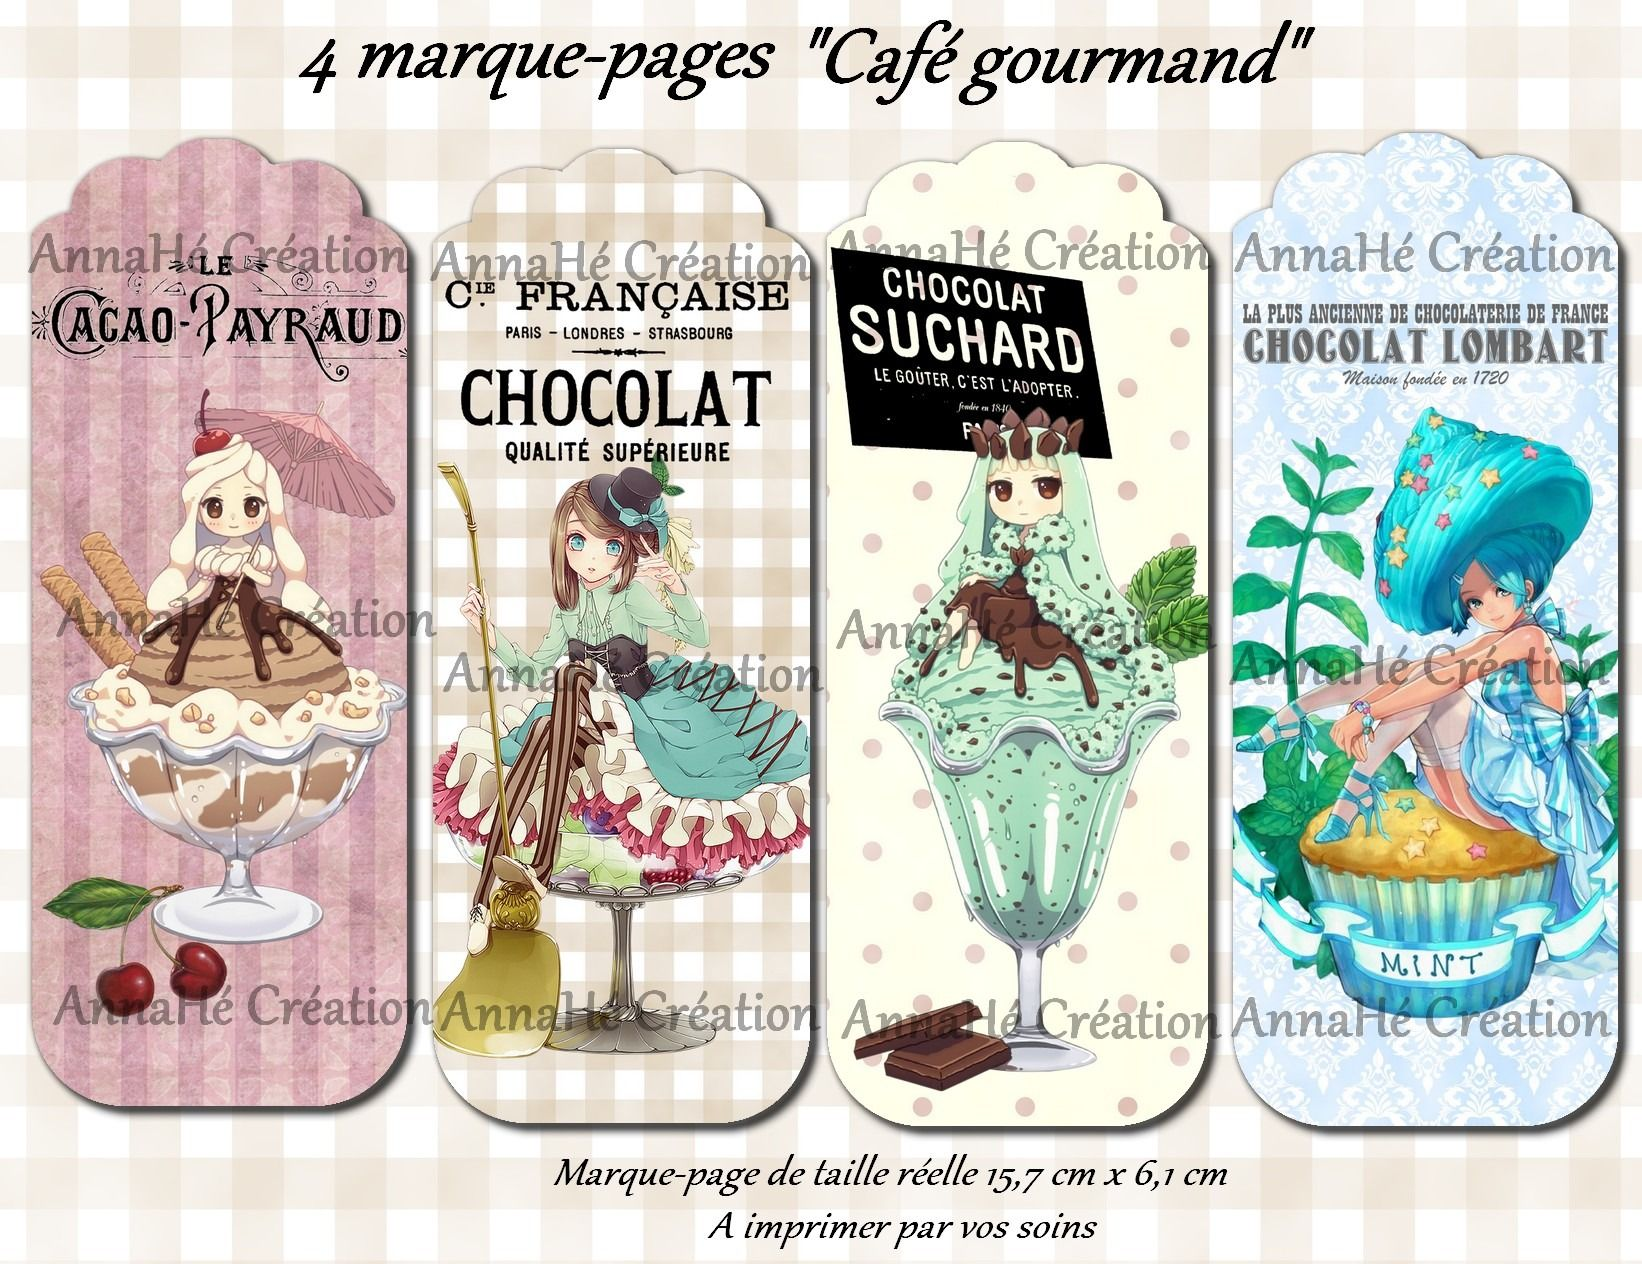 4 marque pages imprimer caf gourmand marque pages par annahe creation illustratrions. Black Bedroom Furniture Sets. Home Design Ideas